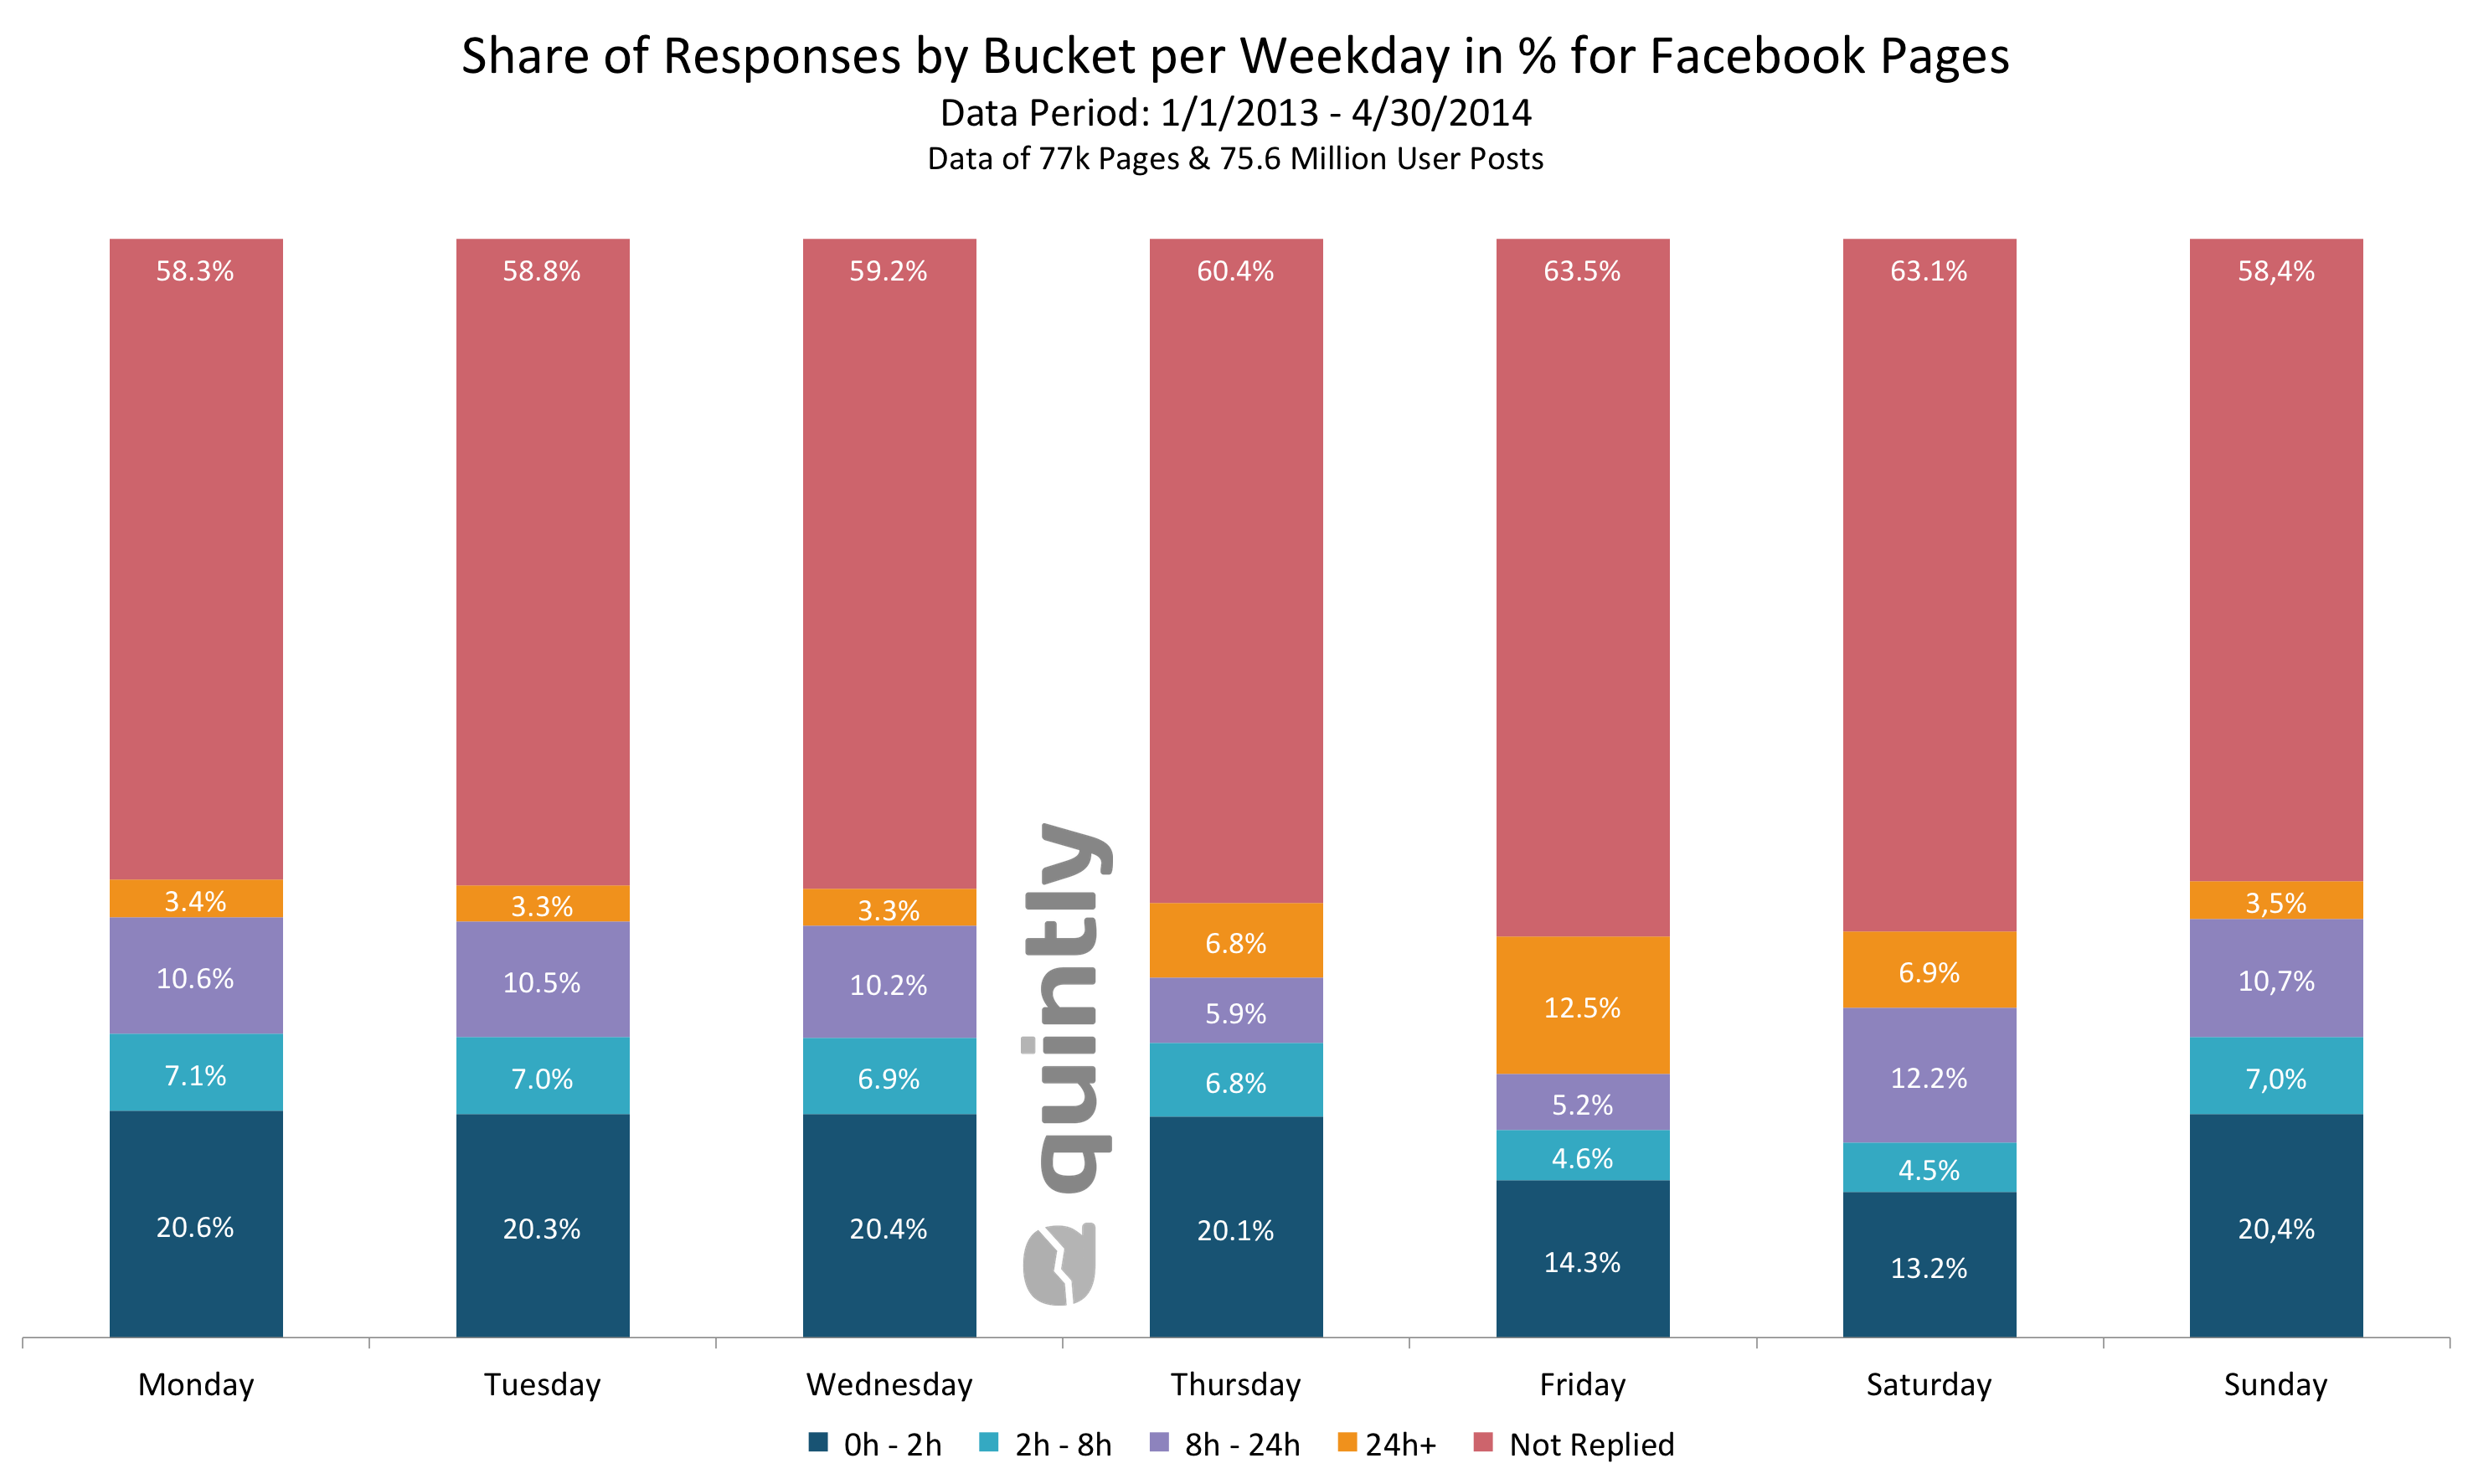 quintly_Share_Of_Responses_By_Bucket_Per_Weekday_For_Facebook_Pages